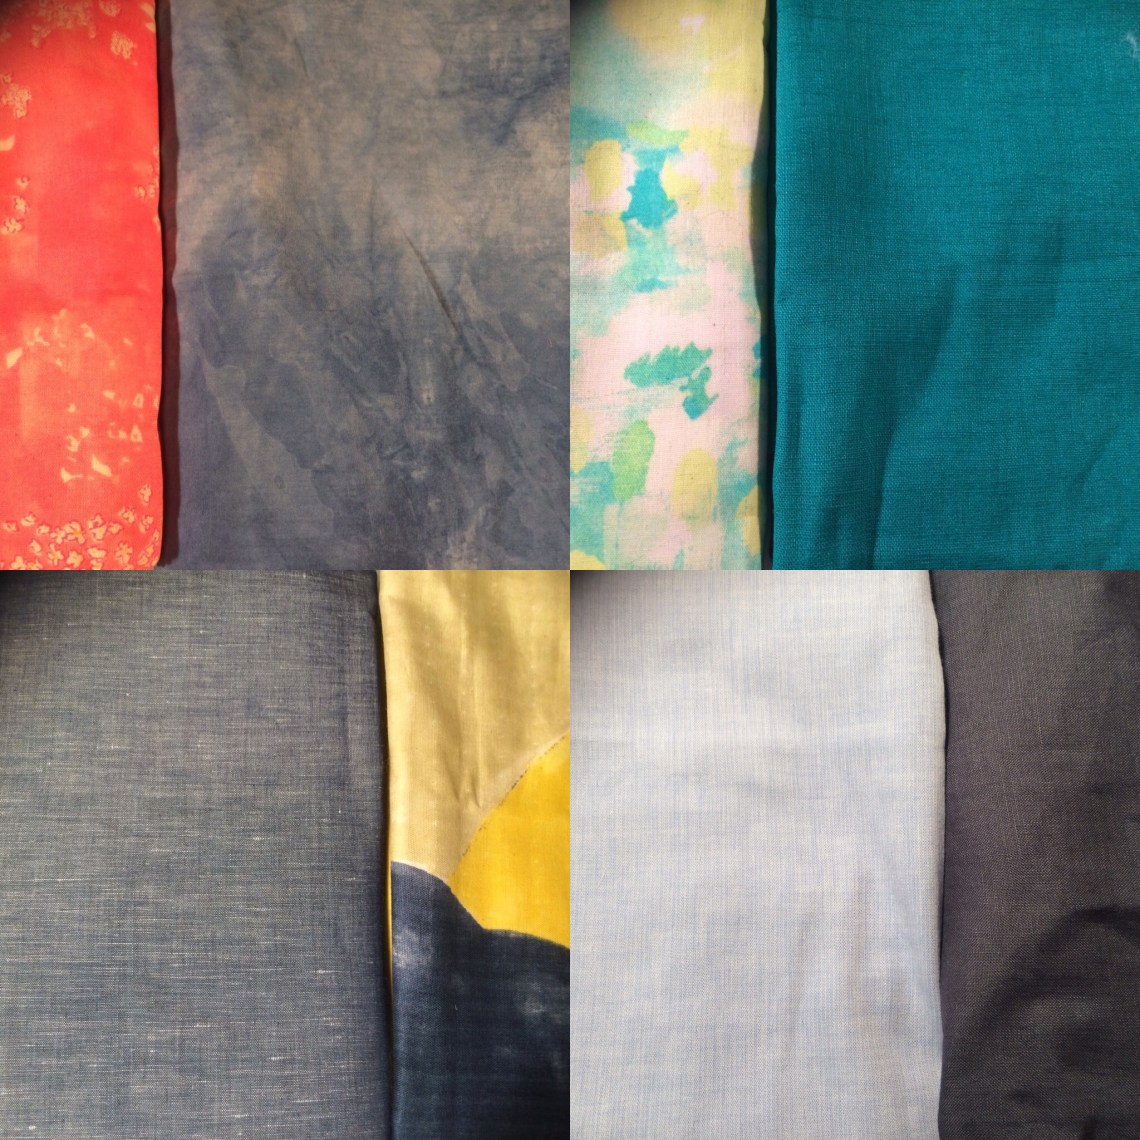 Possible fabric choices for Perry Ellis dress